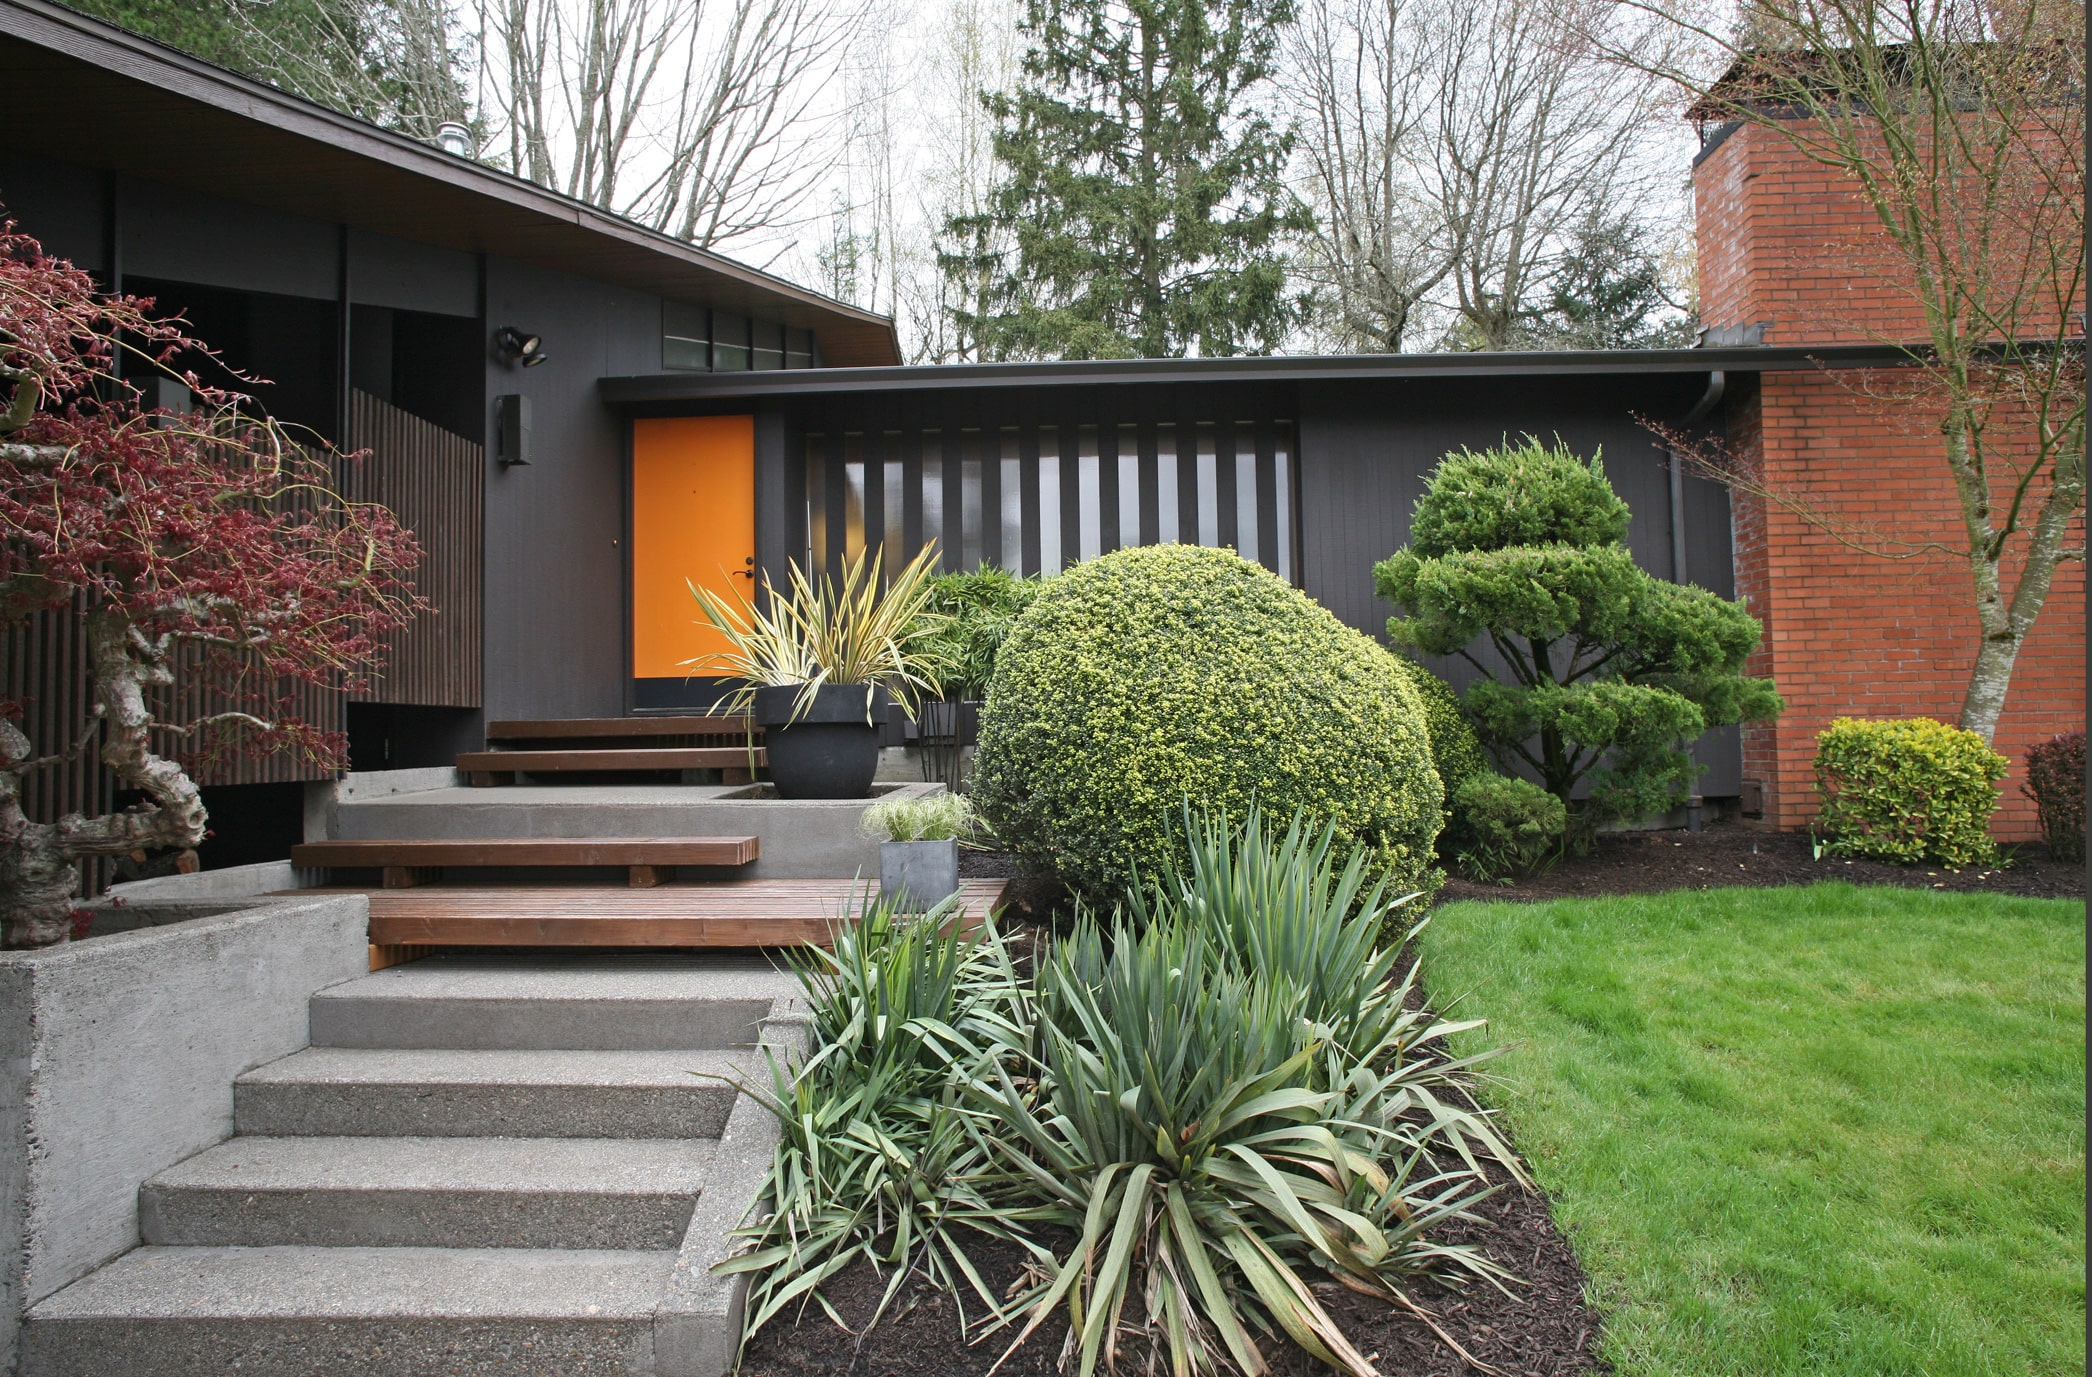 The Best Neighborhoods To Find Mid Century Modern Homes In